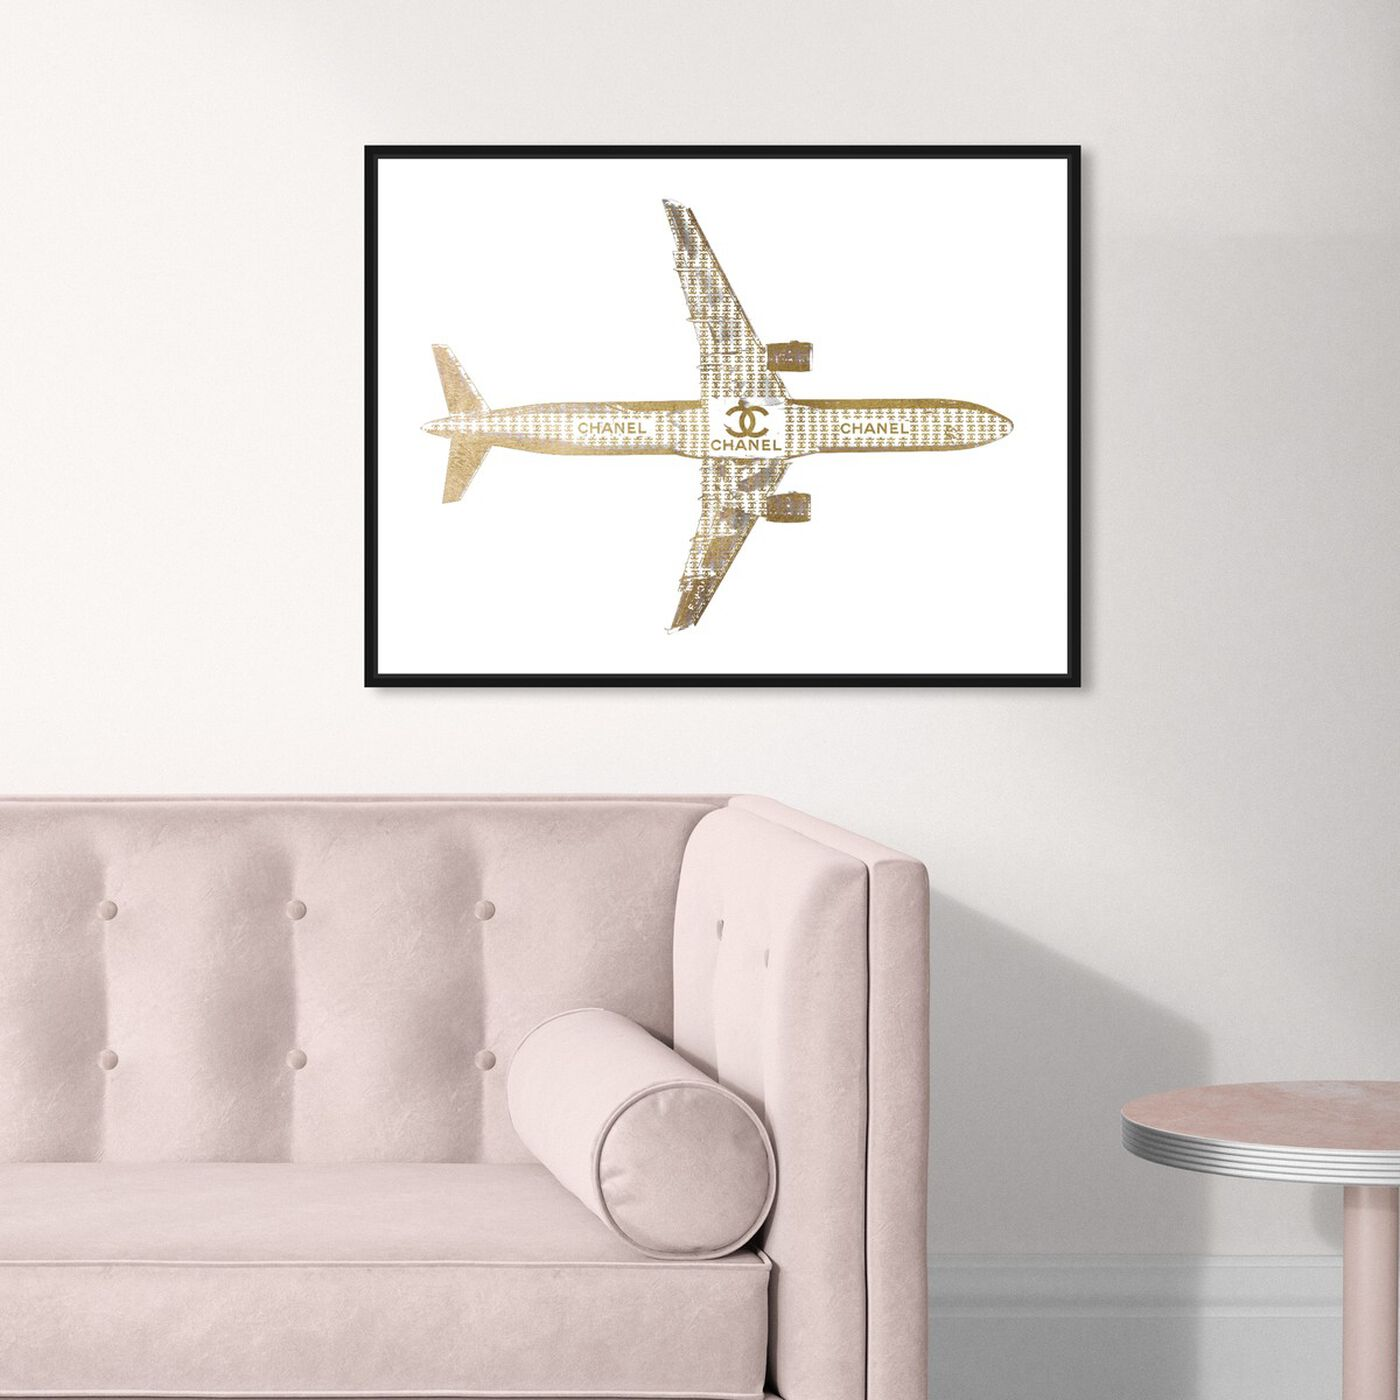 Hanging view of Trendsetter CC Airlines featuring fashion and glam and lifestyle art.